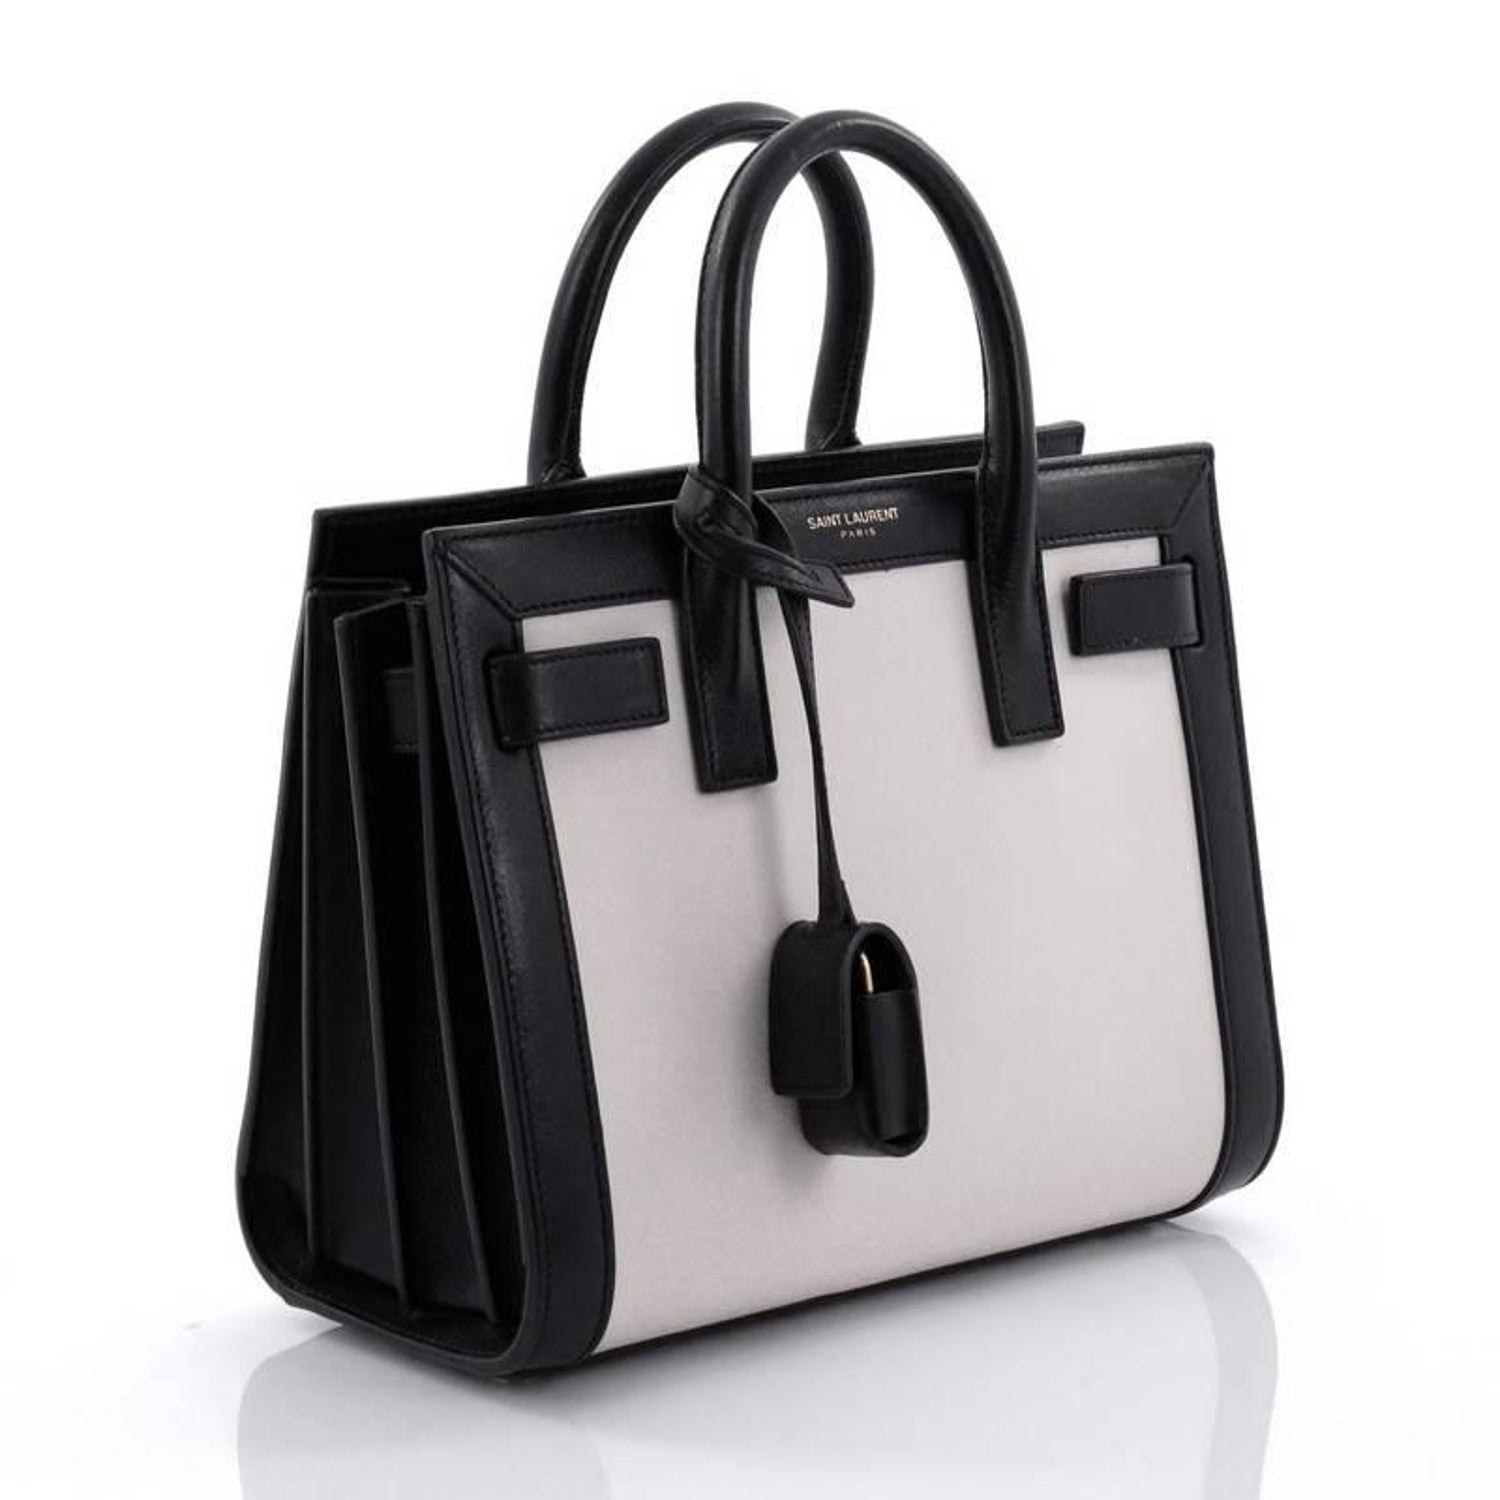 477267a34a21d Saint Laurent Bicolor Sac de Jour Handbag Leather Nano at 1stdibs